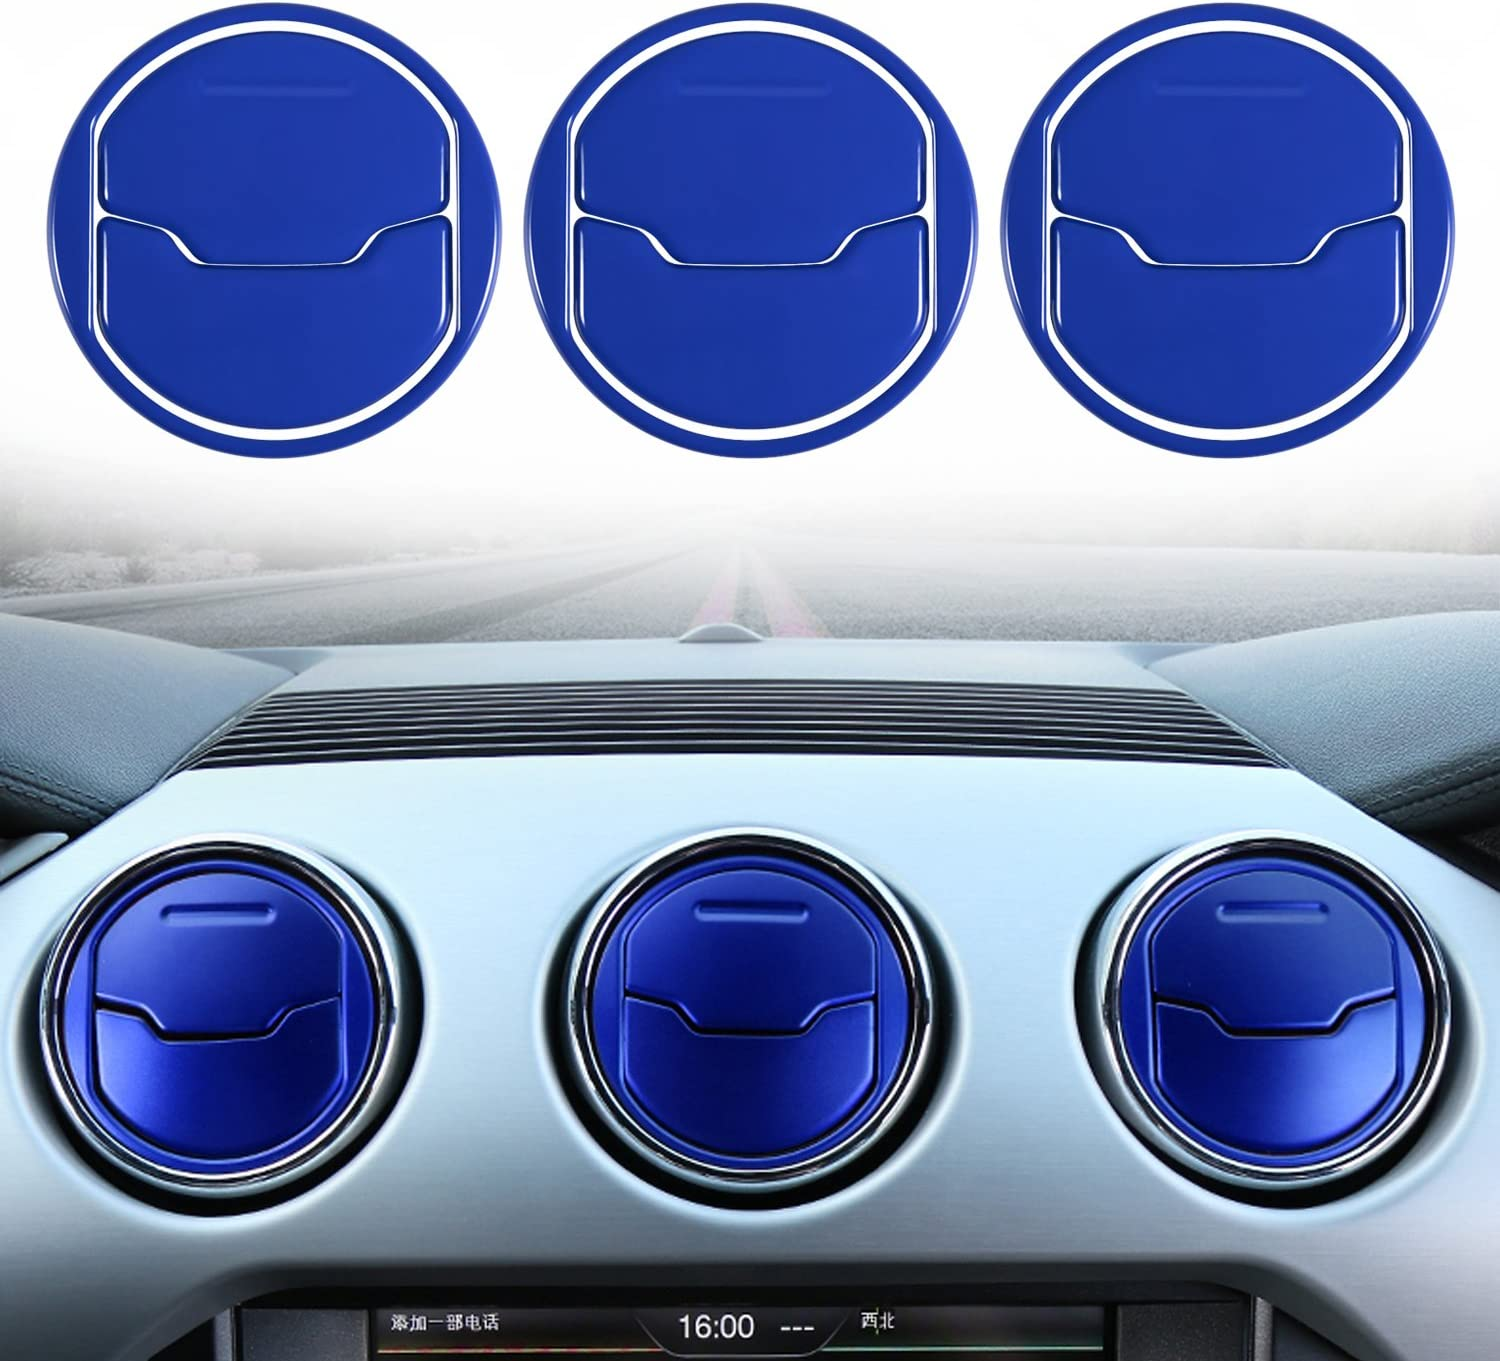 Blue Danti 9 PCS Aluminium Alloy Dashboar Console Central Air Conditioner Outlet Vent Cover Trim For Ford Mustang 2015 2016 2017 2018 wen wen top